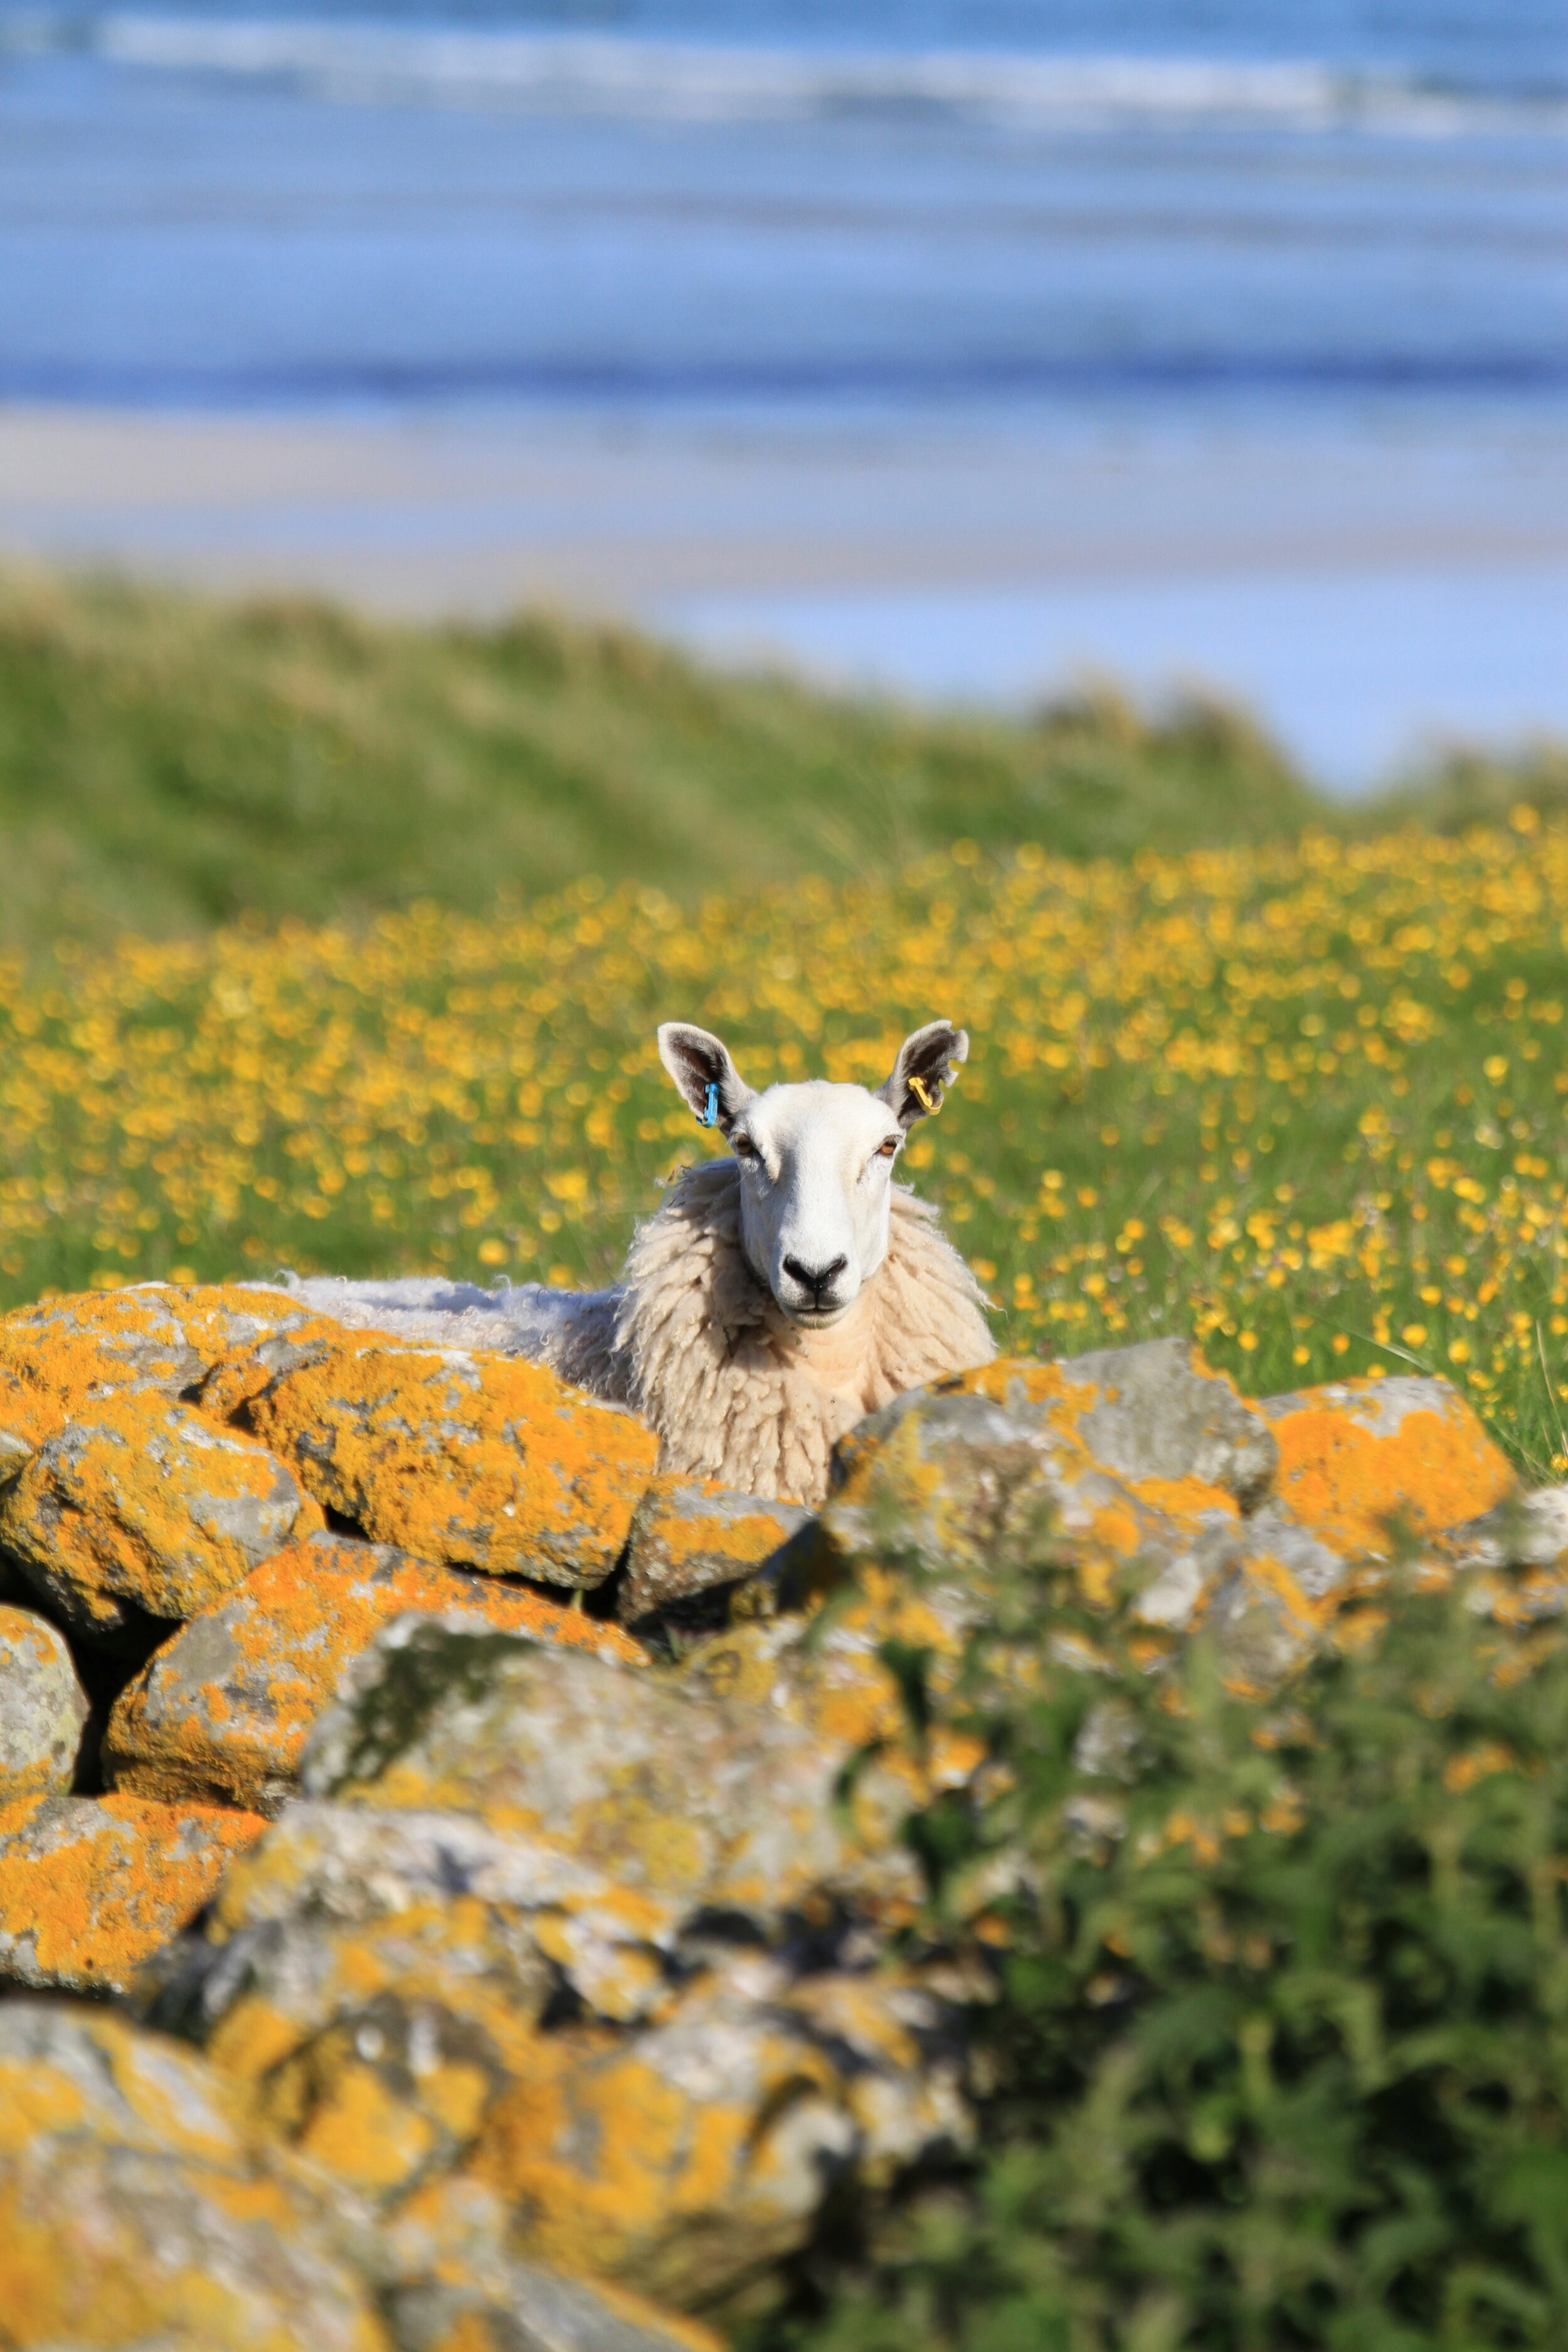 Tiree is known for producing high-quality store animals.